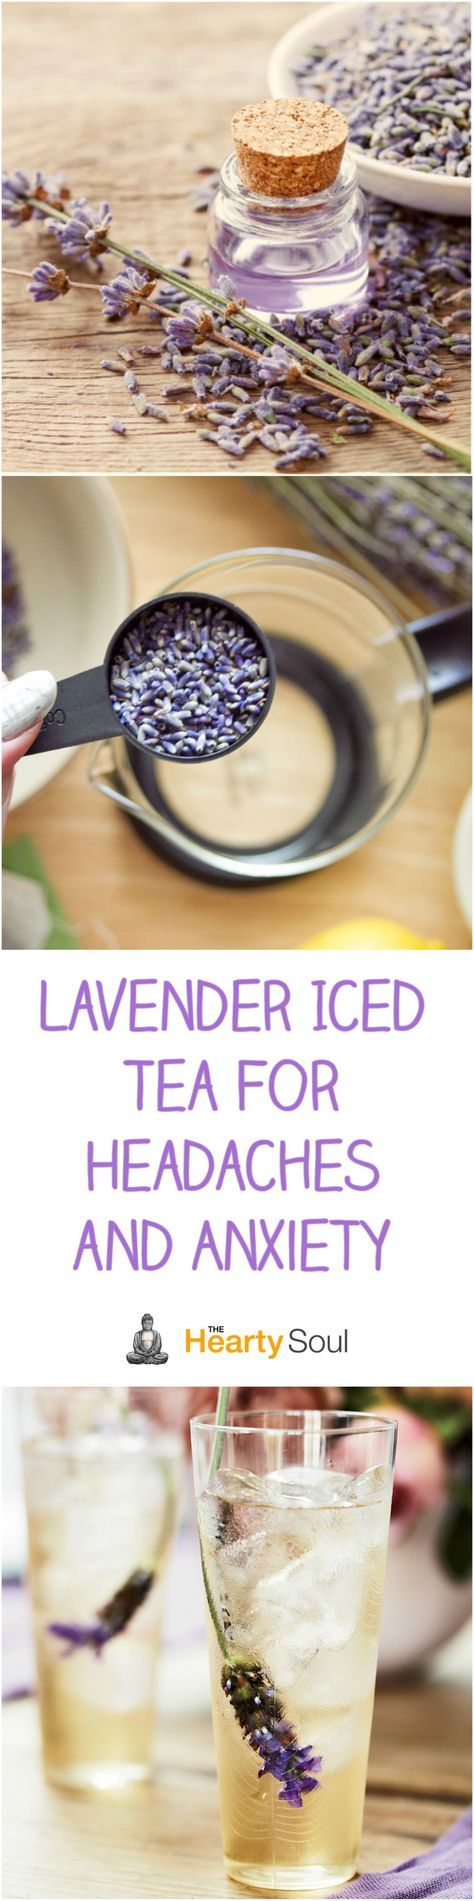 Lavender Iced Tea For Headaches and Anxiety